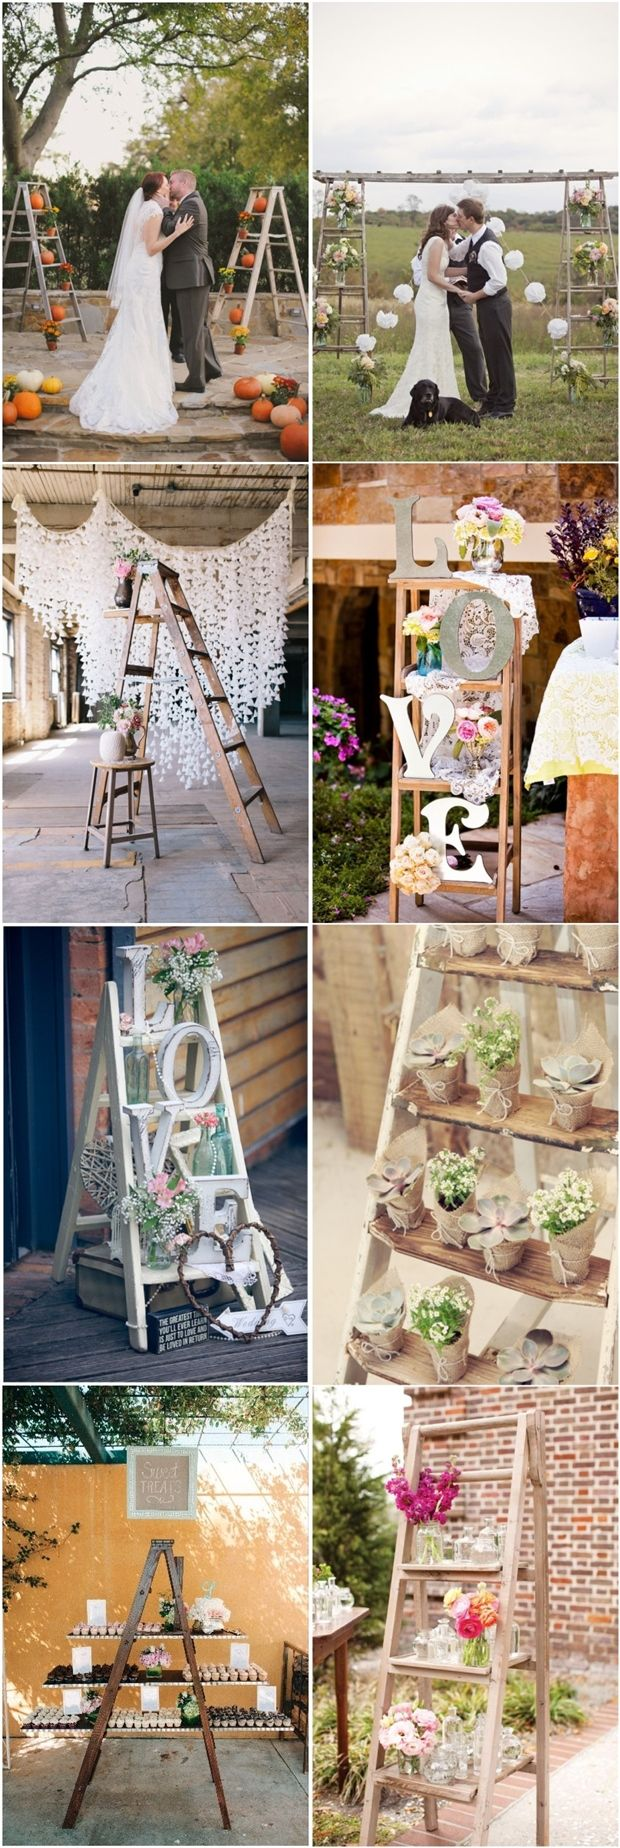 Country wedding decoration ideas   Best images about wedding bliss on Pinterest  Rustic country